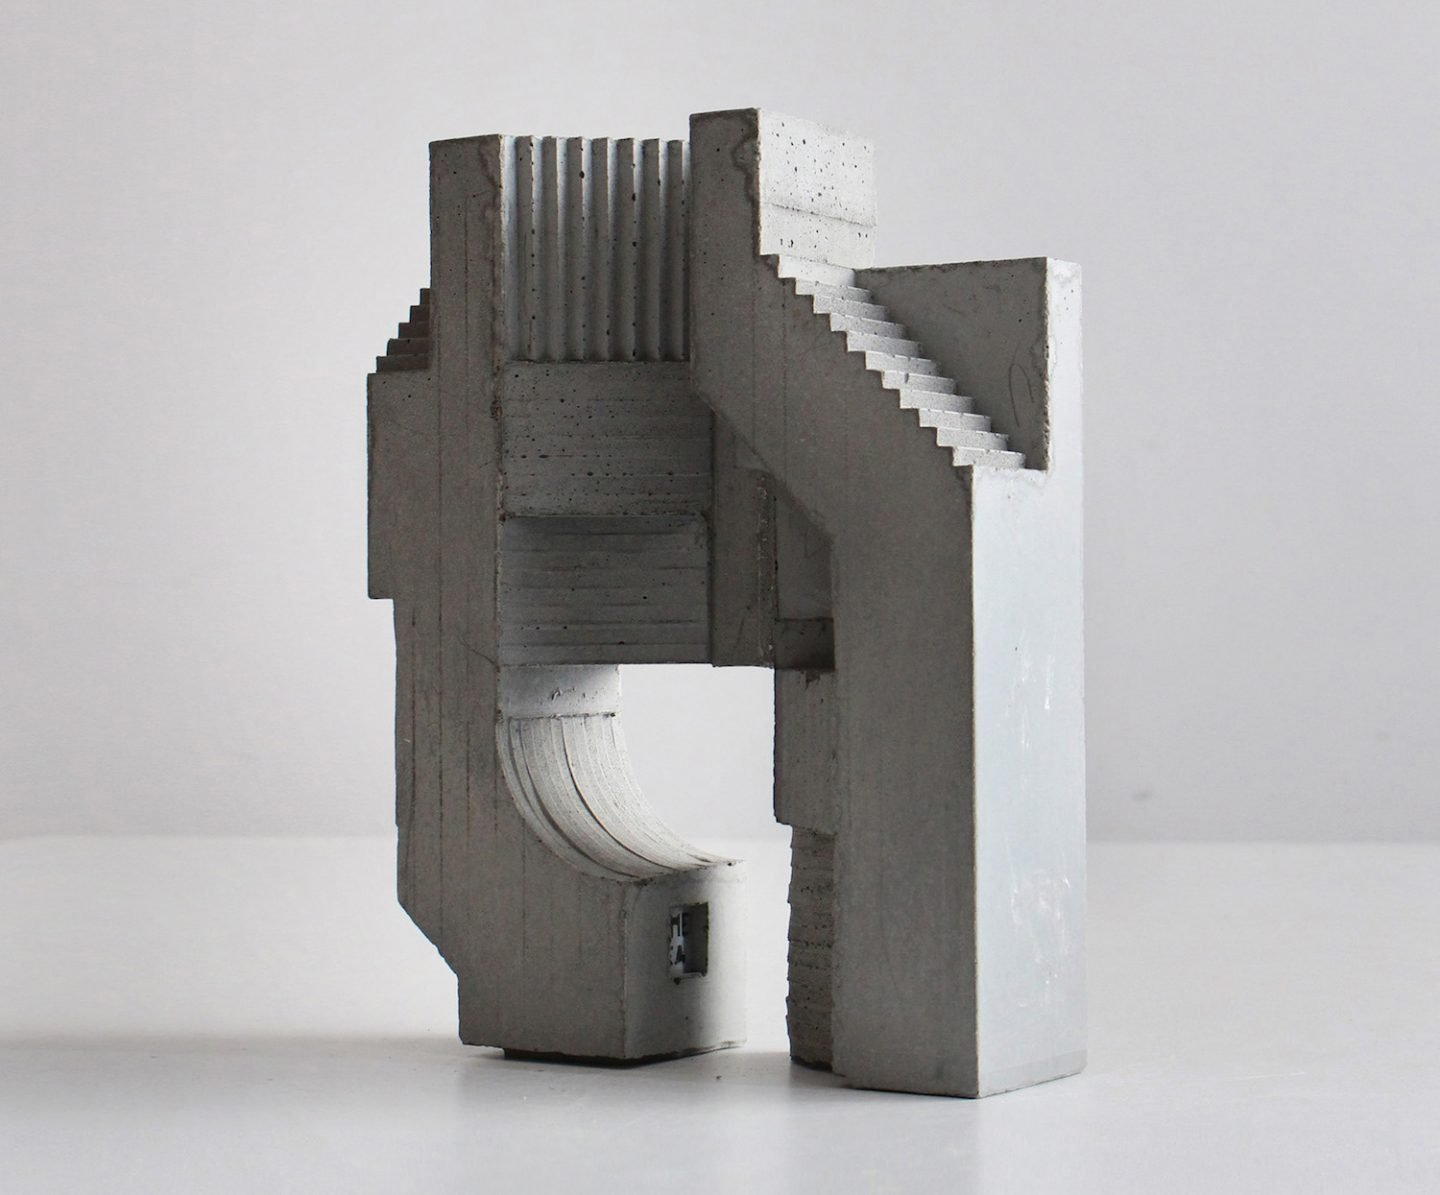 iGNANT_Art_Concrete_Modular_Sculptures_David_Umemoto02